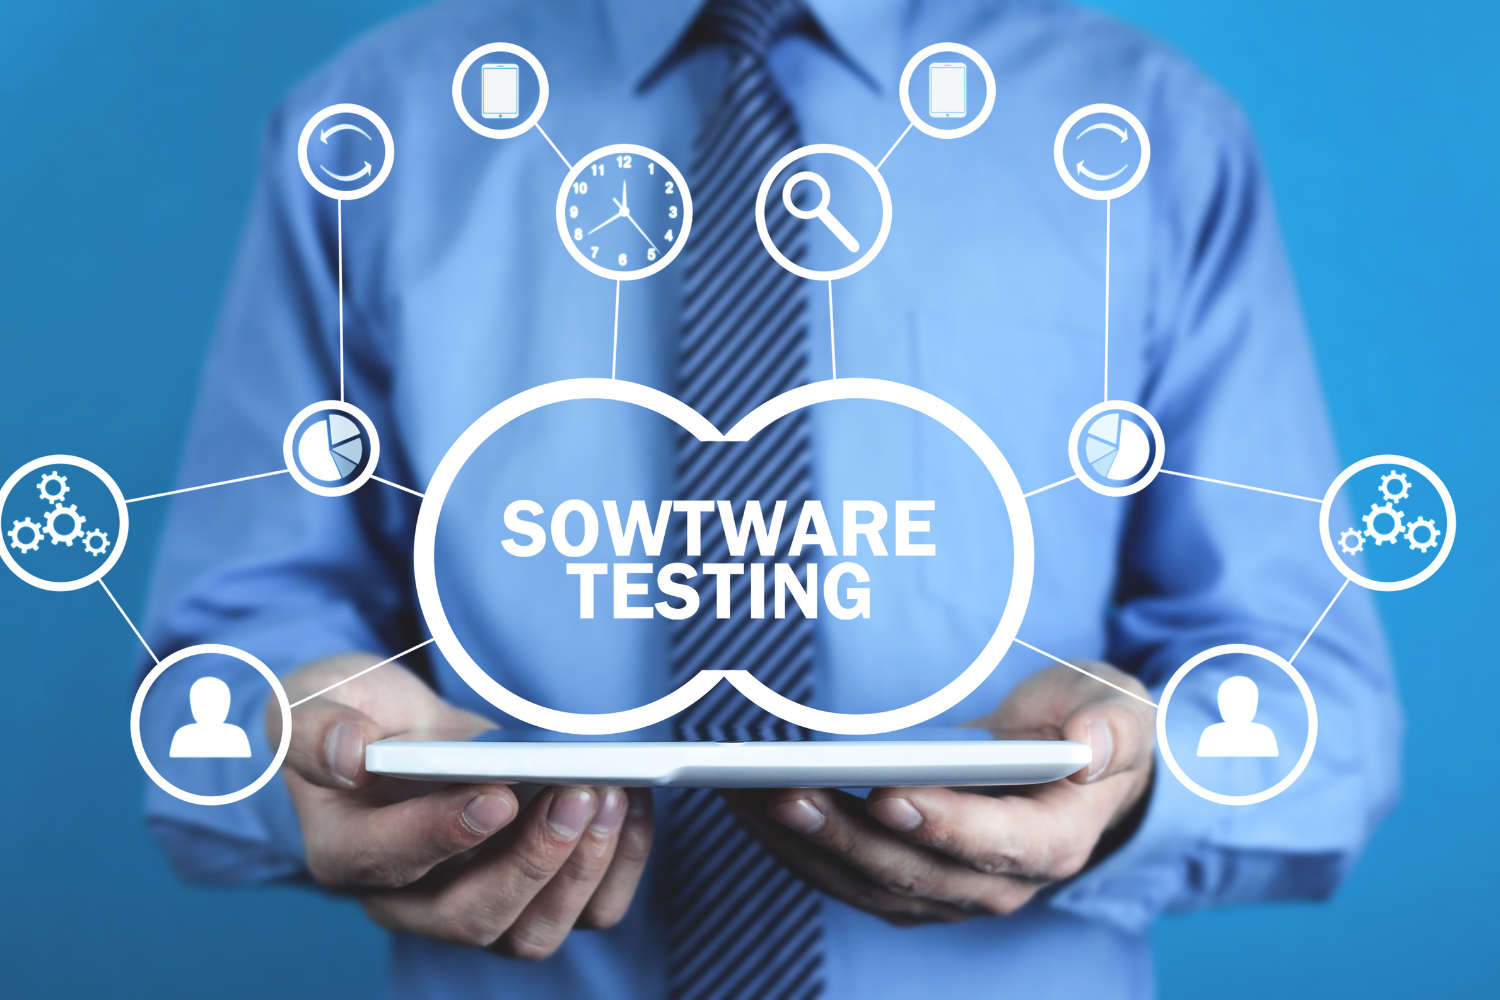 What do you need to know about Software Testing Techniques?